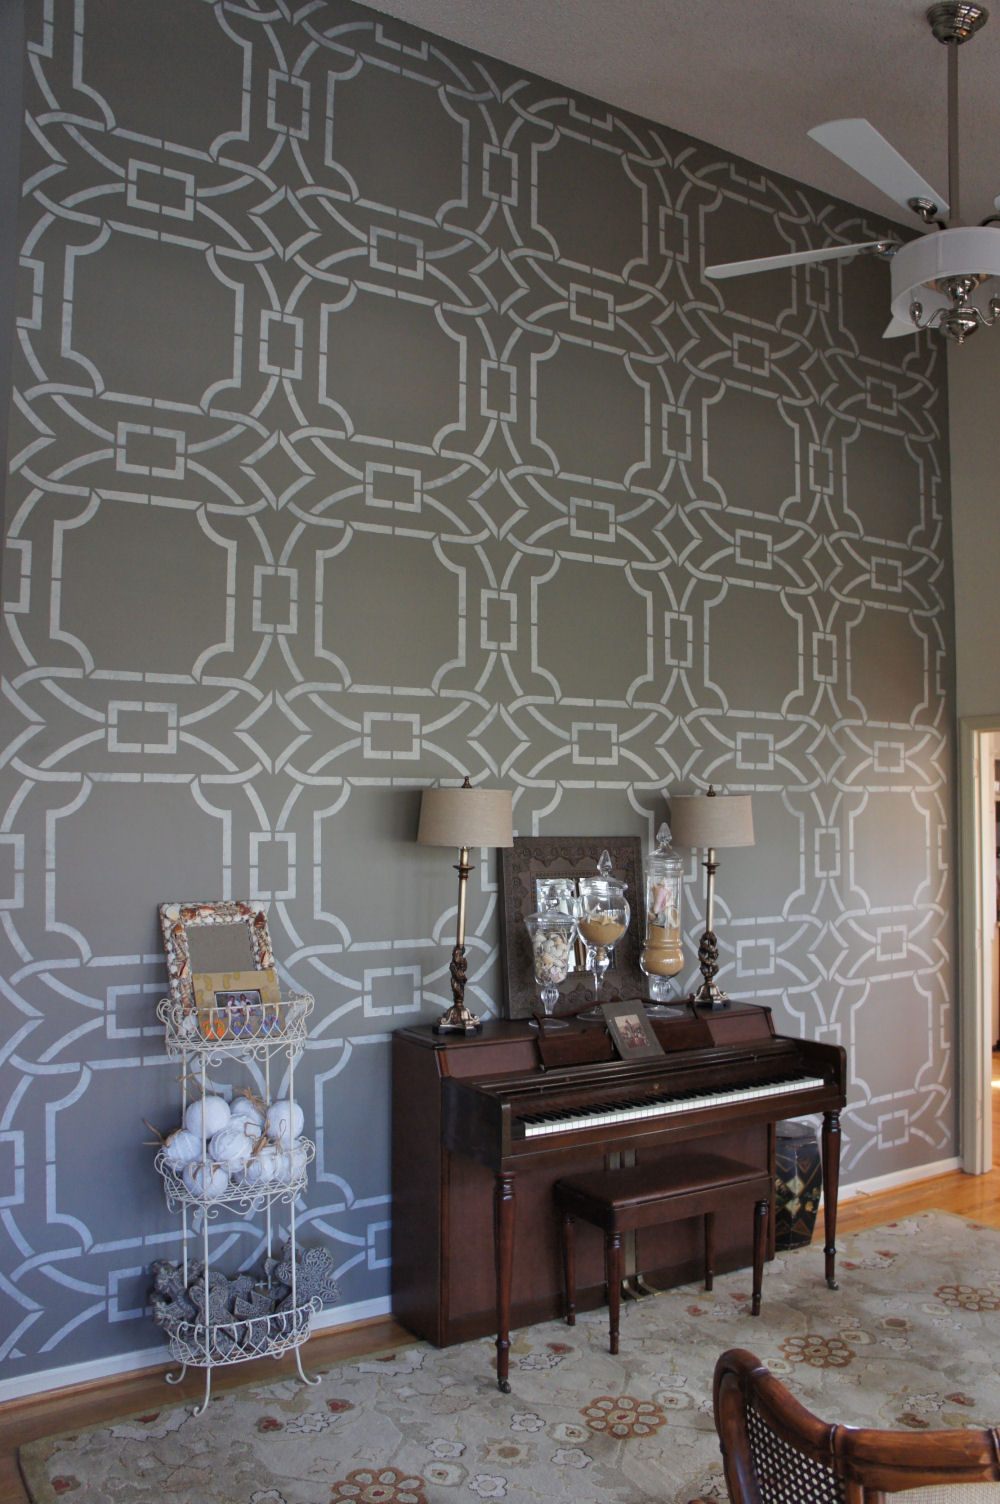 Faux Painting Ideas For Walls Part - 24: Stenciling.